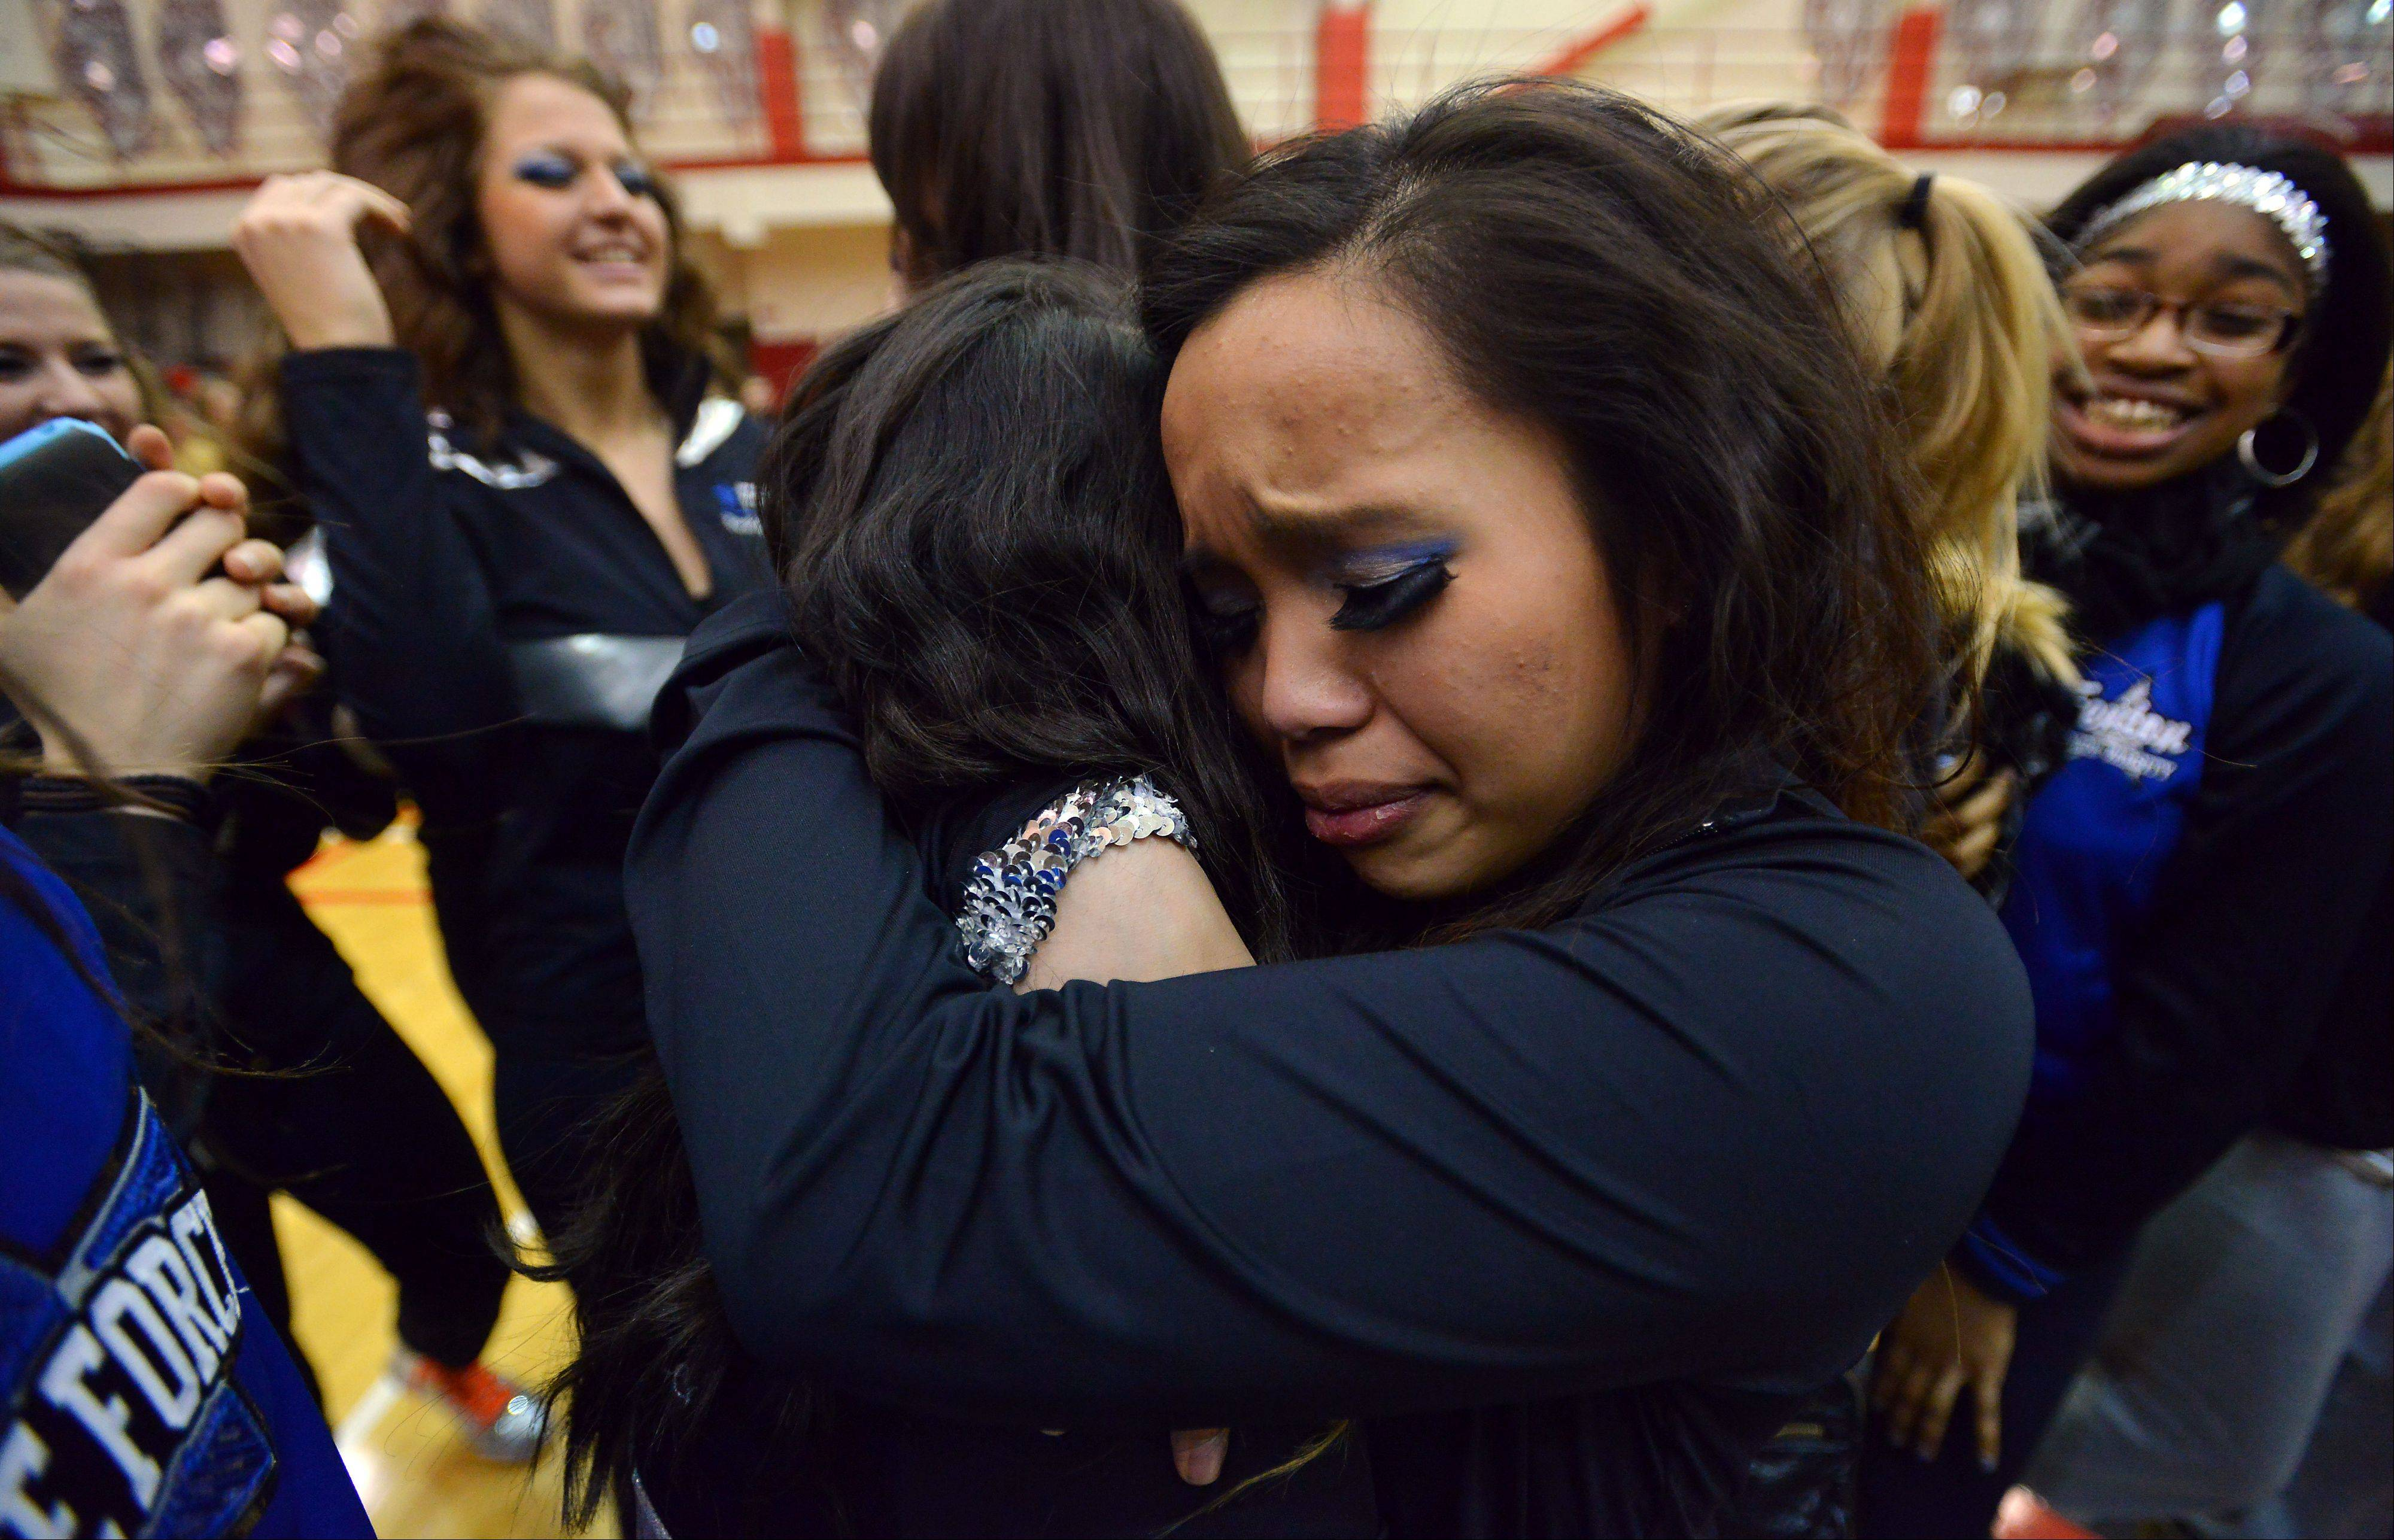 Winners in the (2A) division and will be heading downstate are Fenton as team member Nicole Reyes is overcome by her emotions in front of packed house in the 1st annual Sectional Competition at Palatine High School on Saturday.